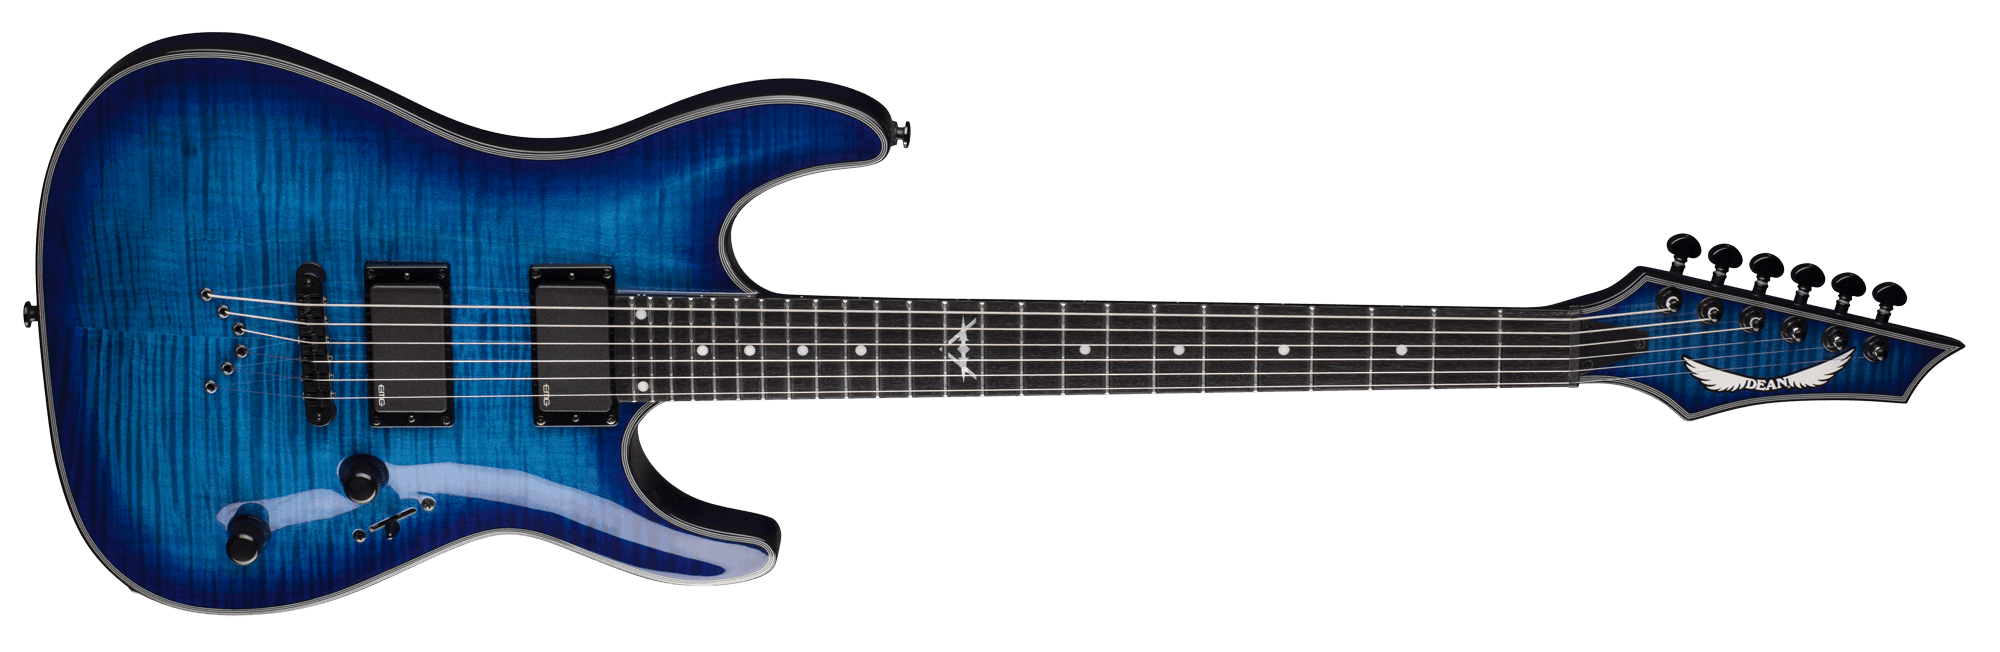 Guitar clipart blue object. Electric png image purepng